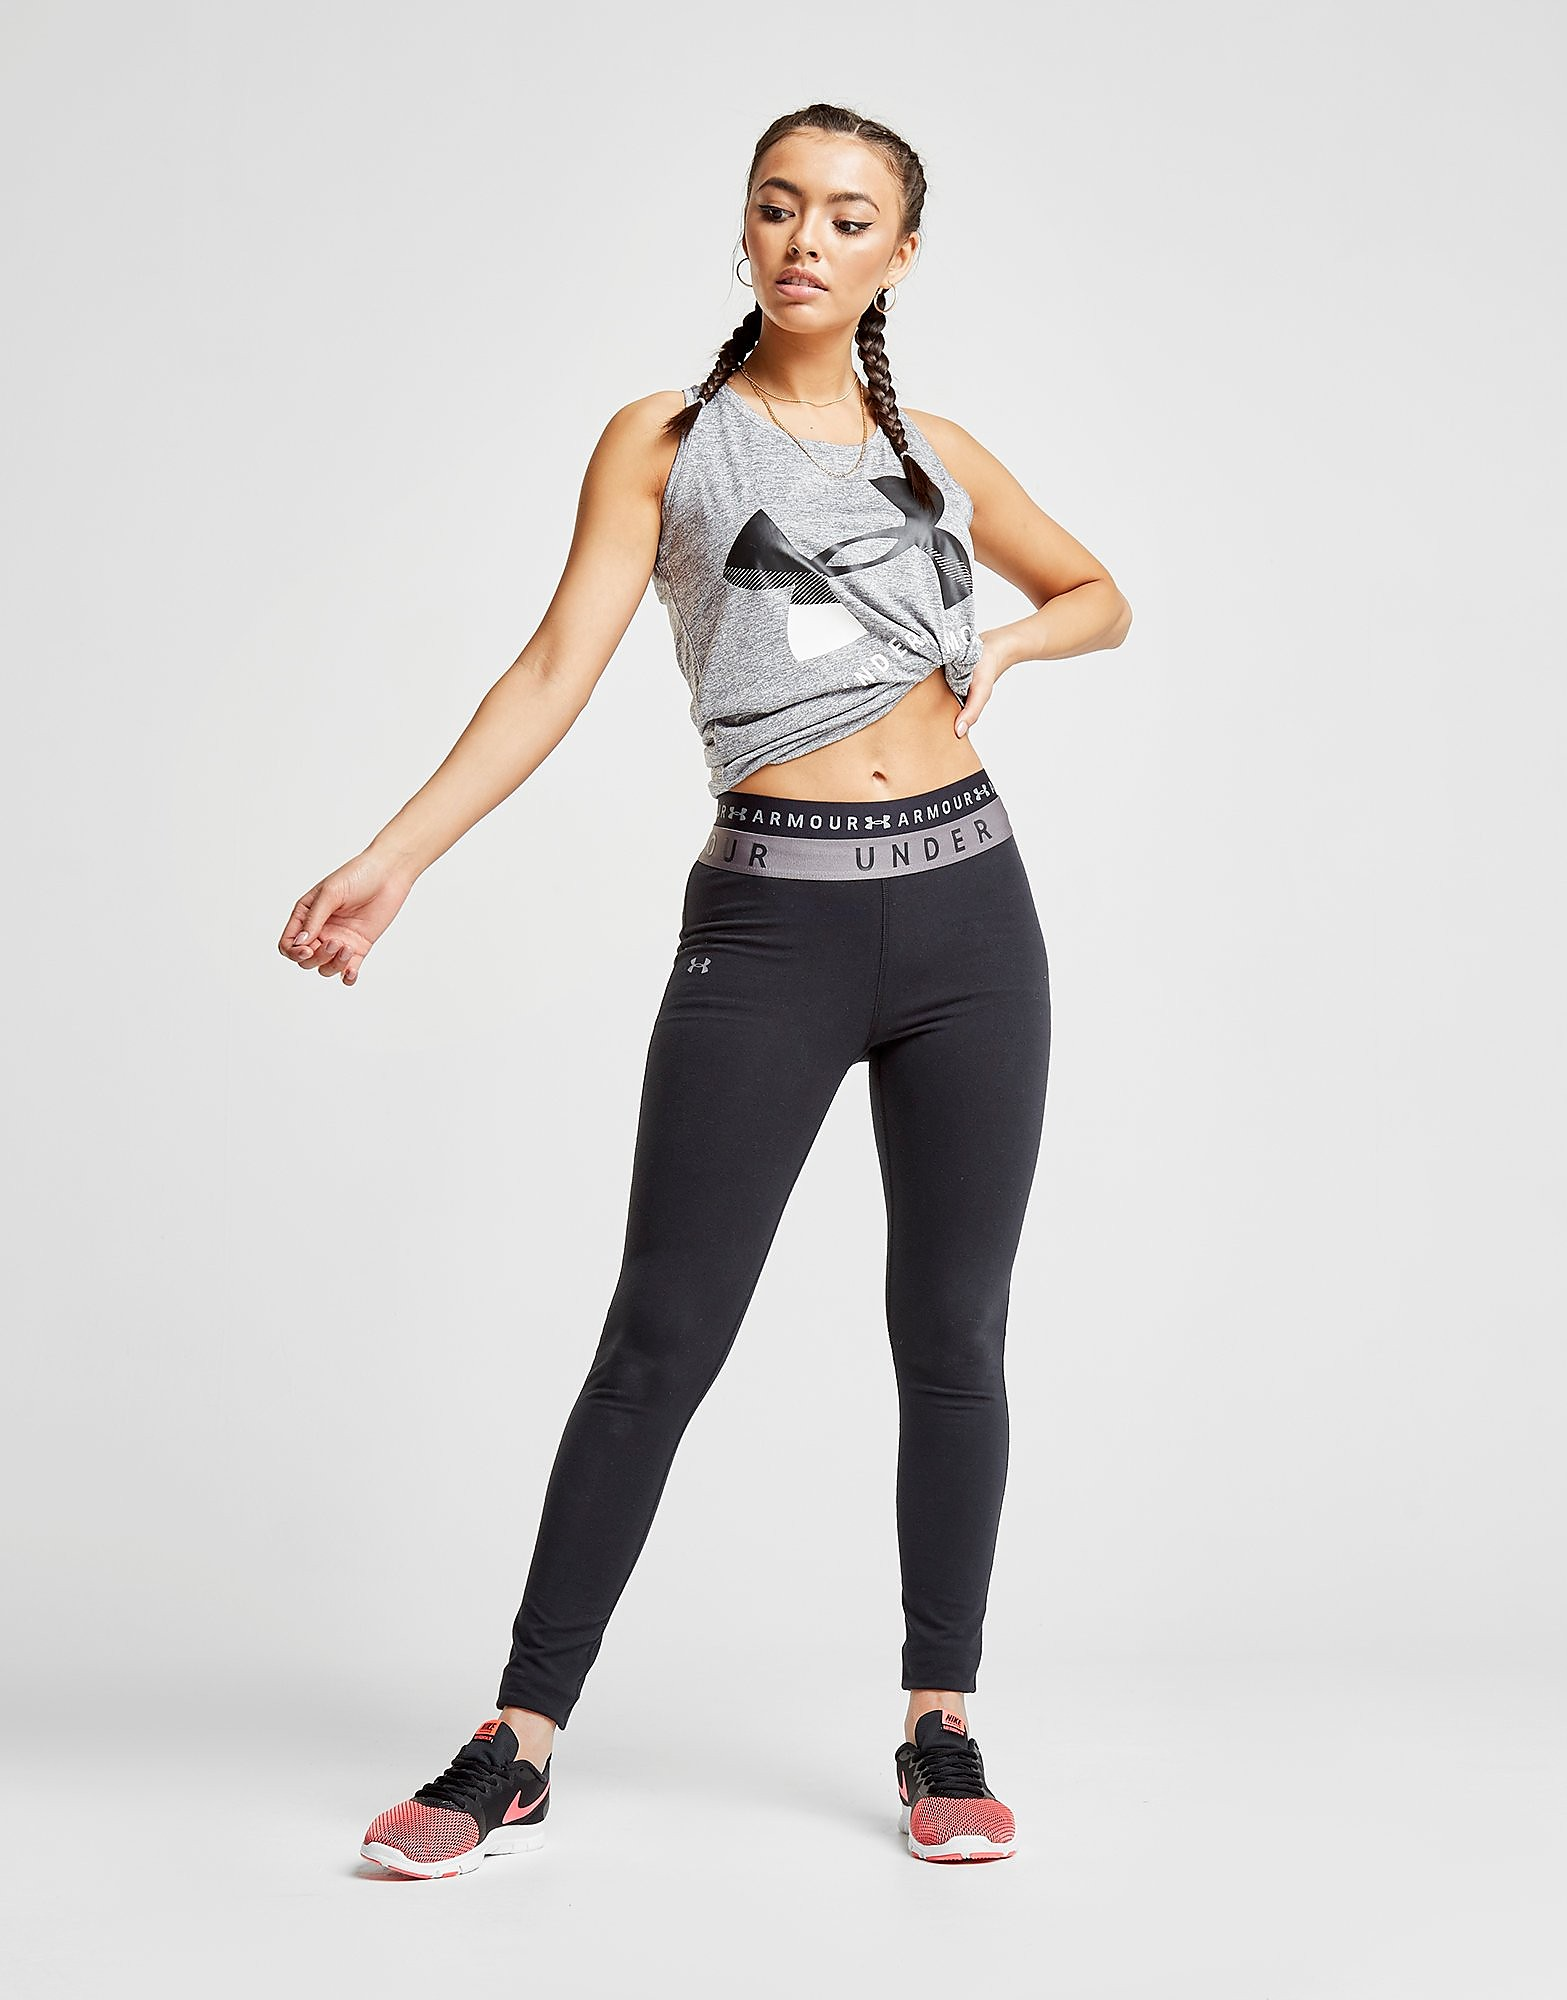 Under Armour Débardeur Tech Femme